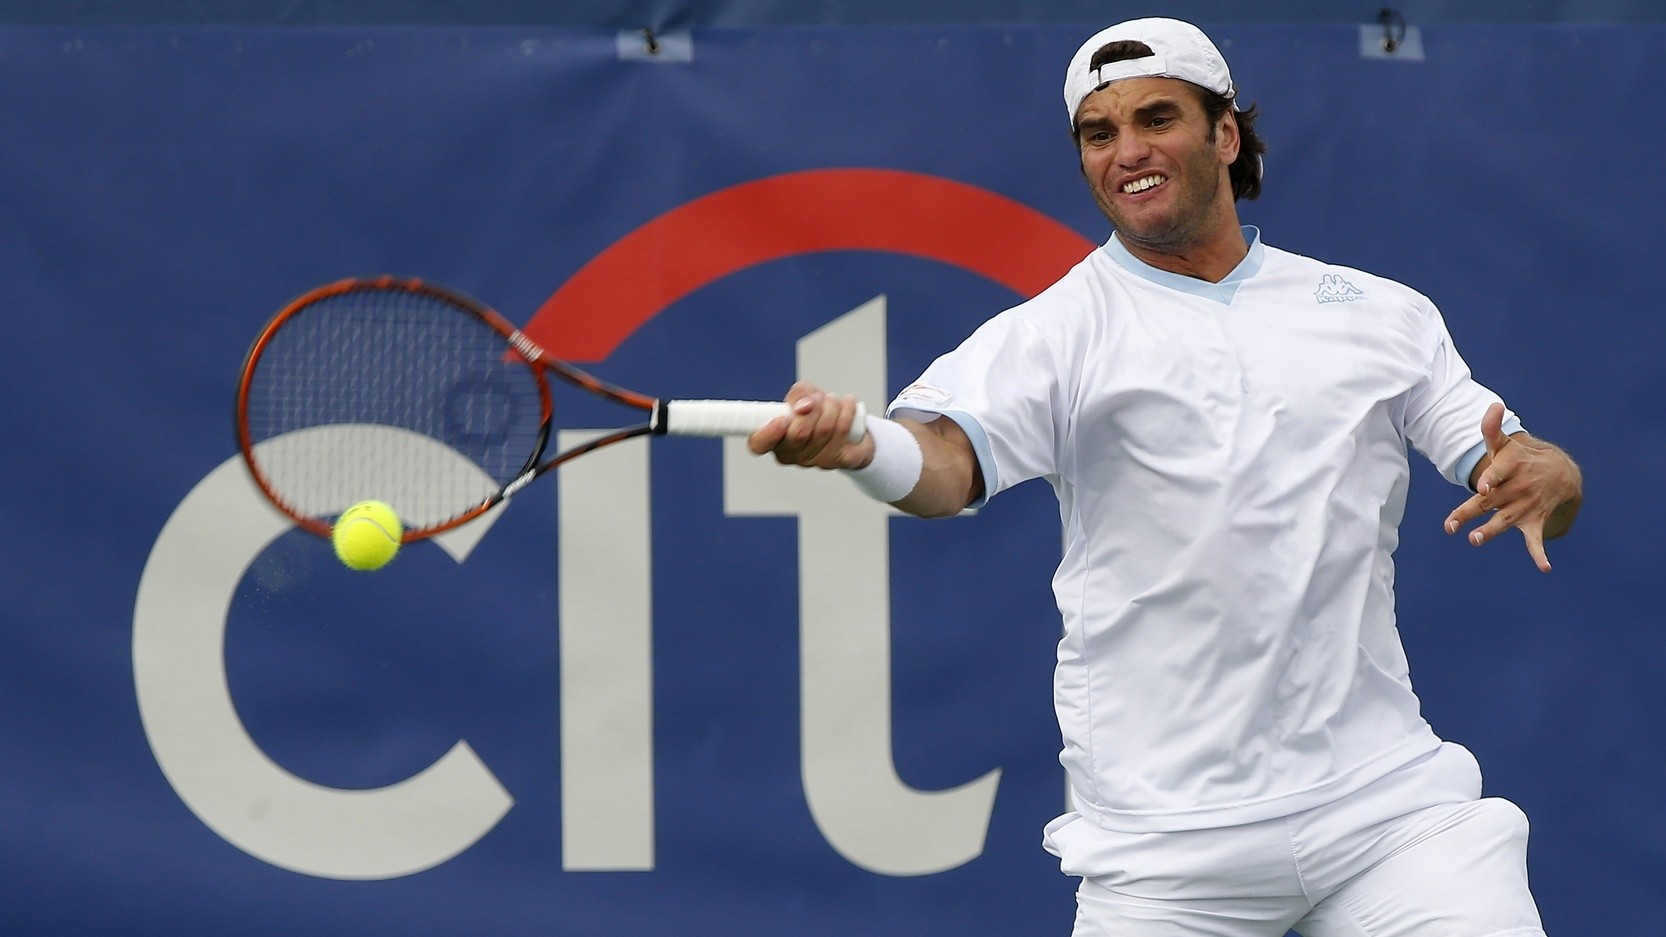 Israel, Politics, and the Curious Case of Tennis Pro Malek Jaziri